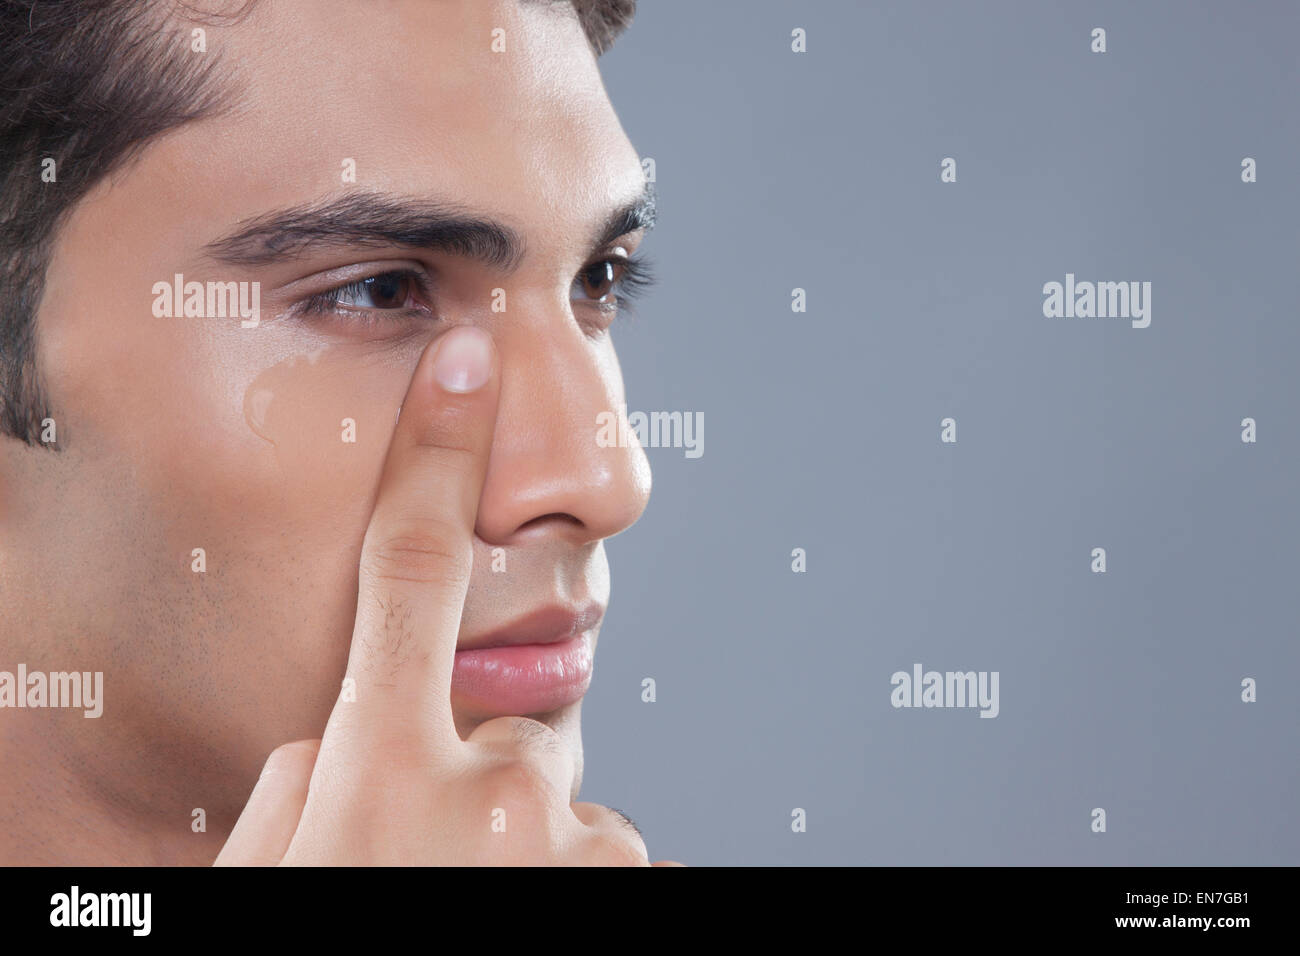 Young man putting on anti wrinkle gel - Stock Image